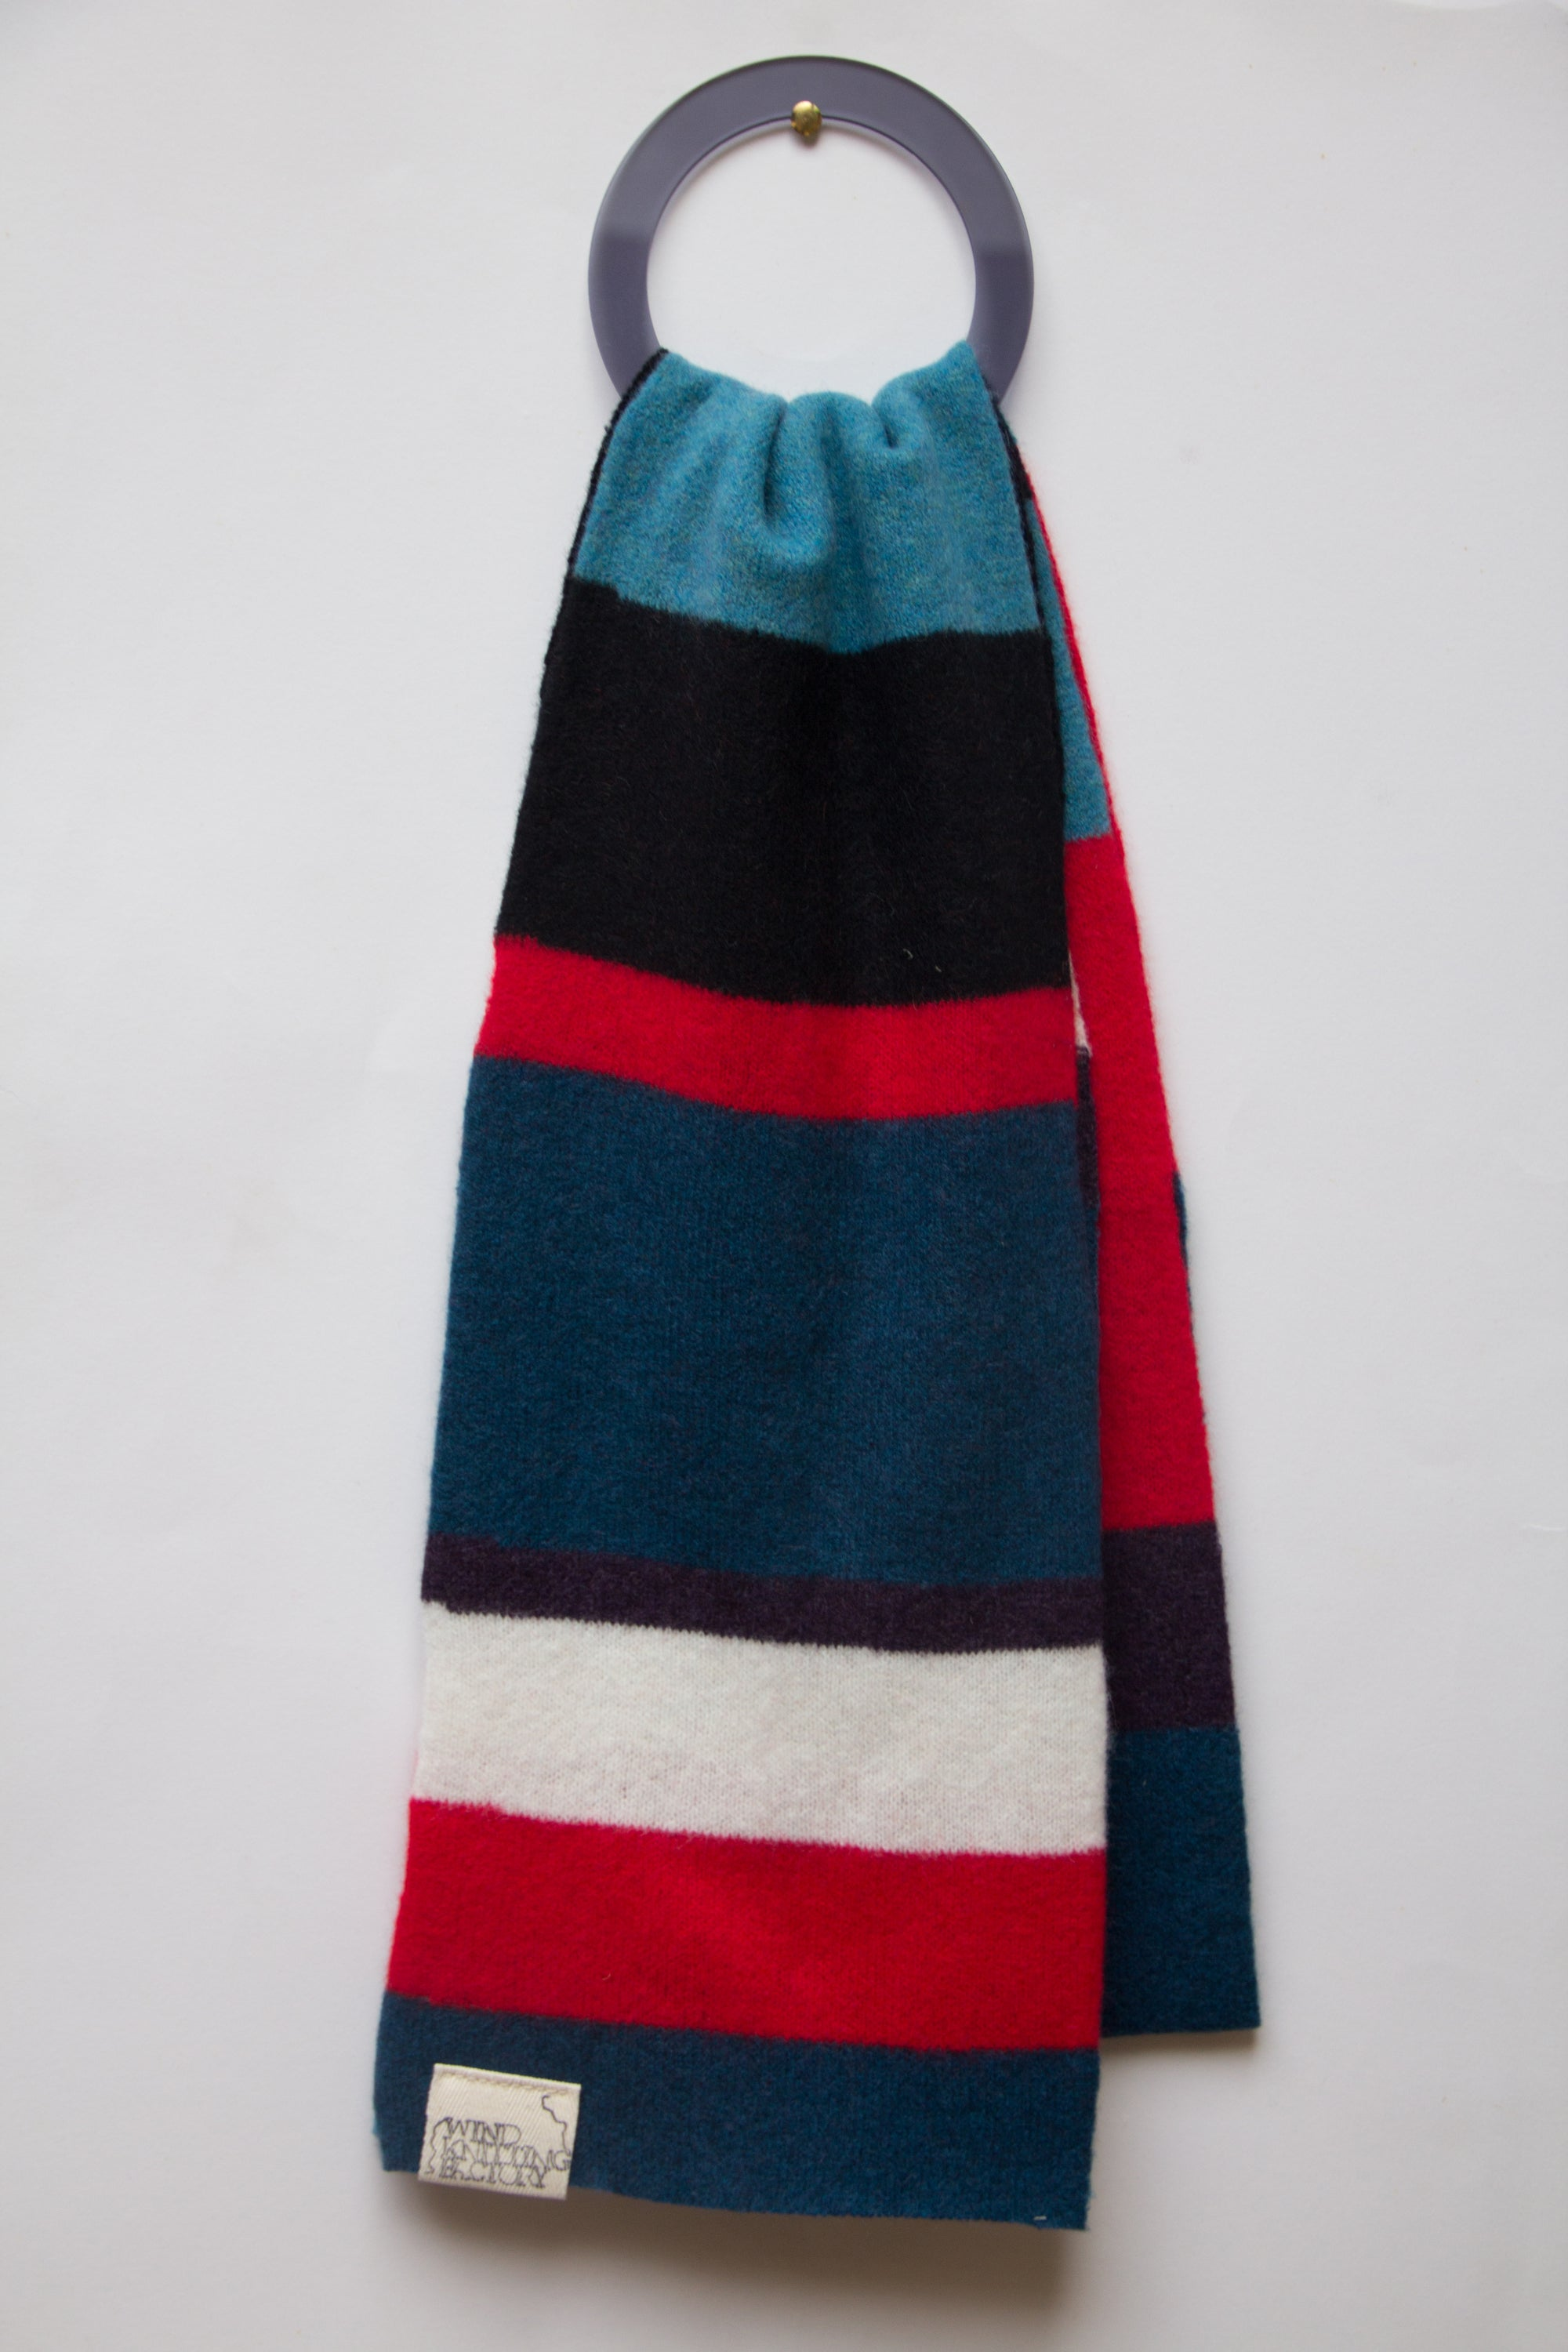 Image of Wind Knitted Scarf red white blue black purple